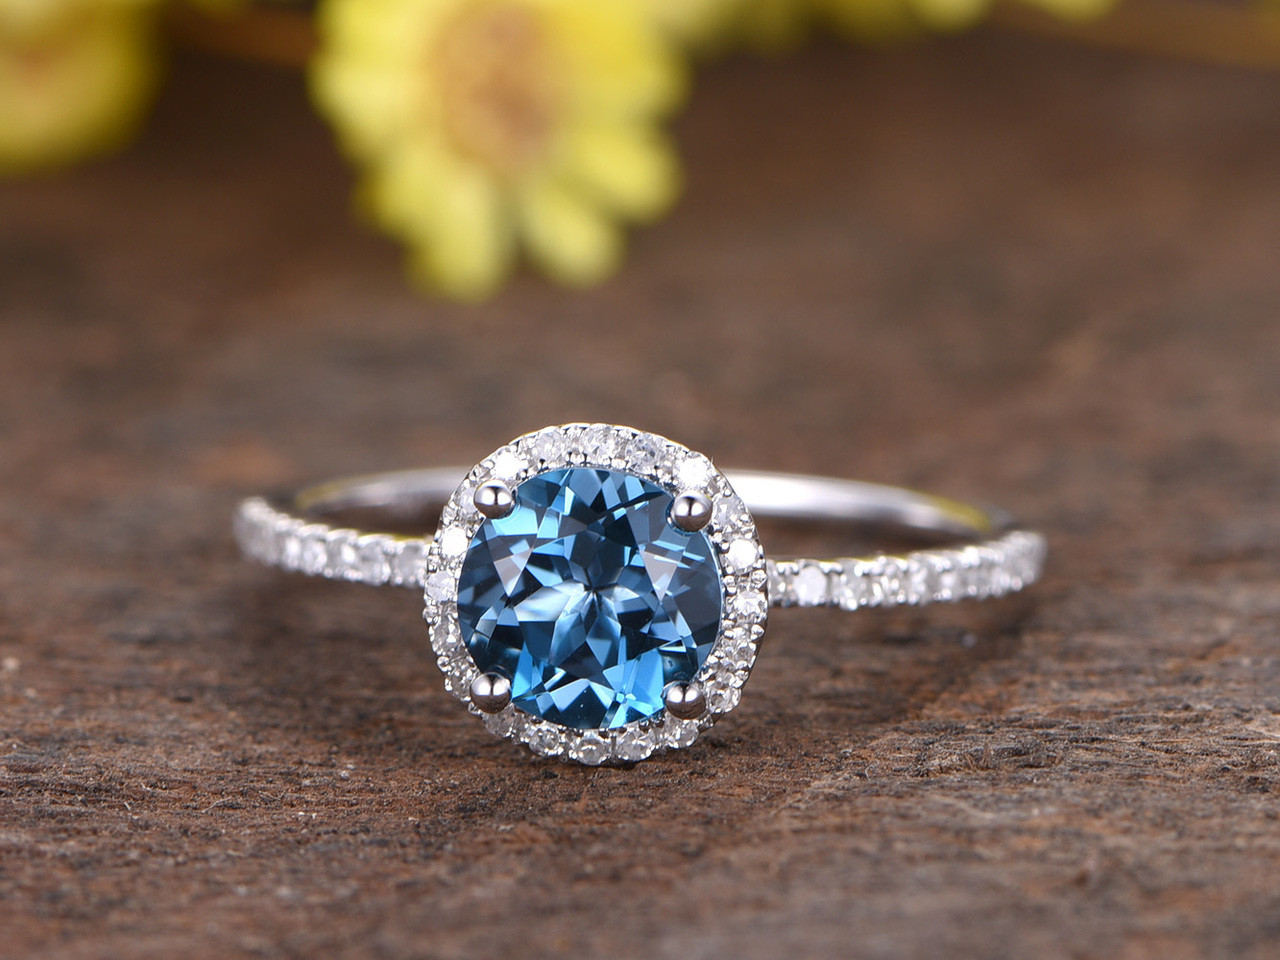 12 Carat London Blue Topaz Engagement Ring With Diamond. Tier Wedding Wedding Rings. Accessory Rings. Past Present Future Rings. Black Hills Gold Wedding Rings. Glam Engagement Rings. Tasteful Engagement Rings. Beaten Gold Wedding Rings. Lady Rings